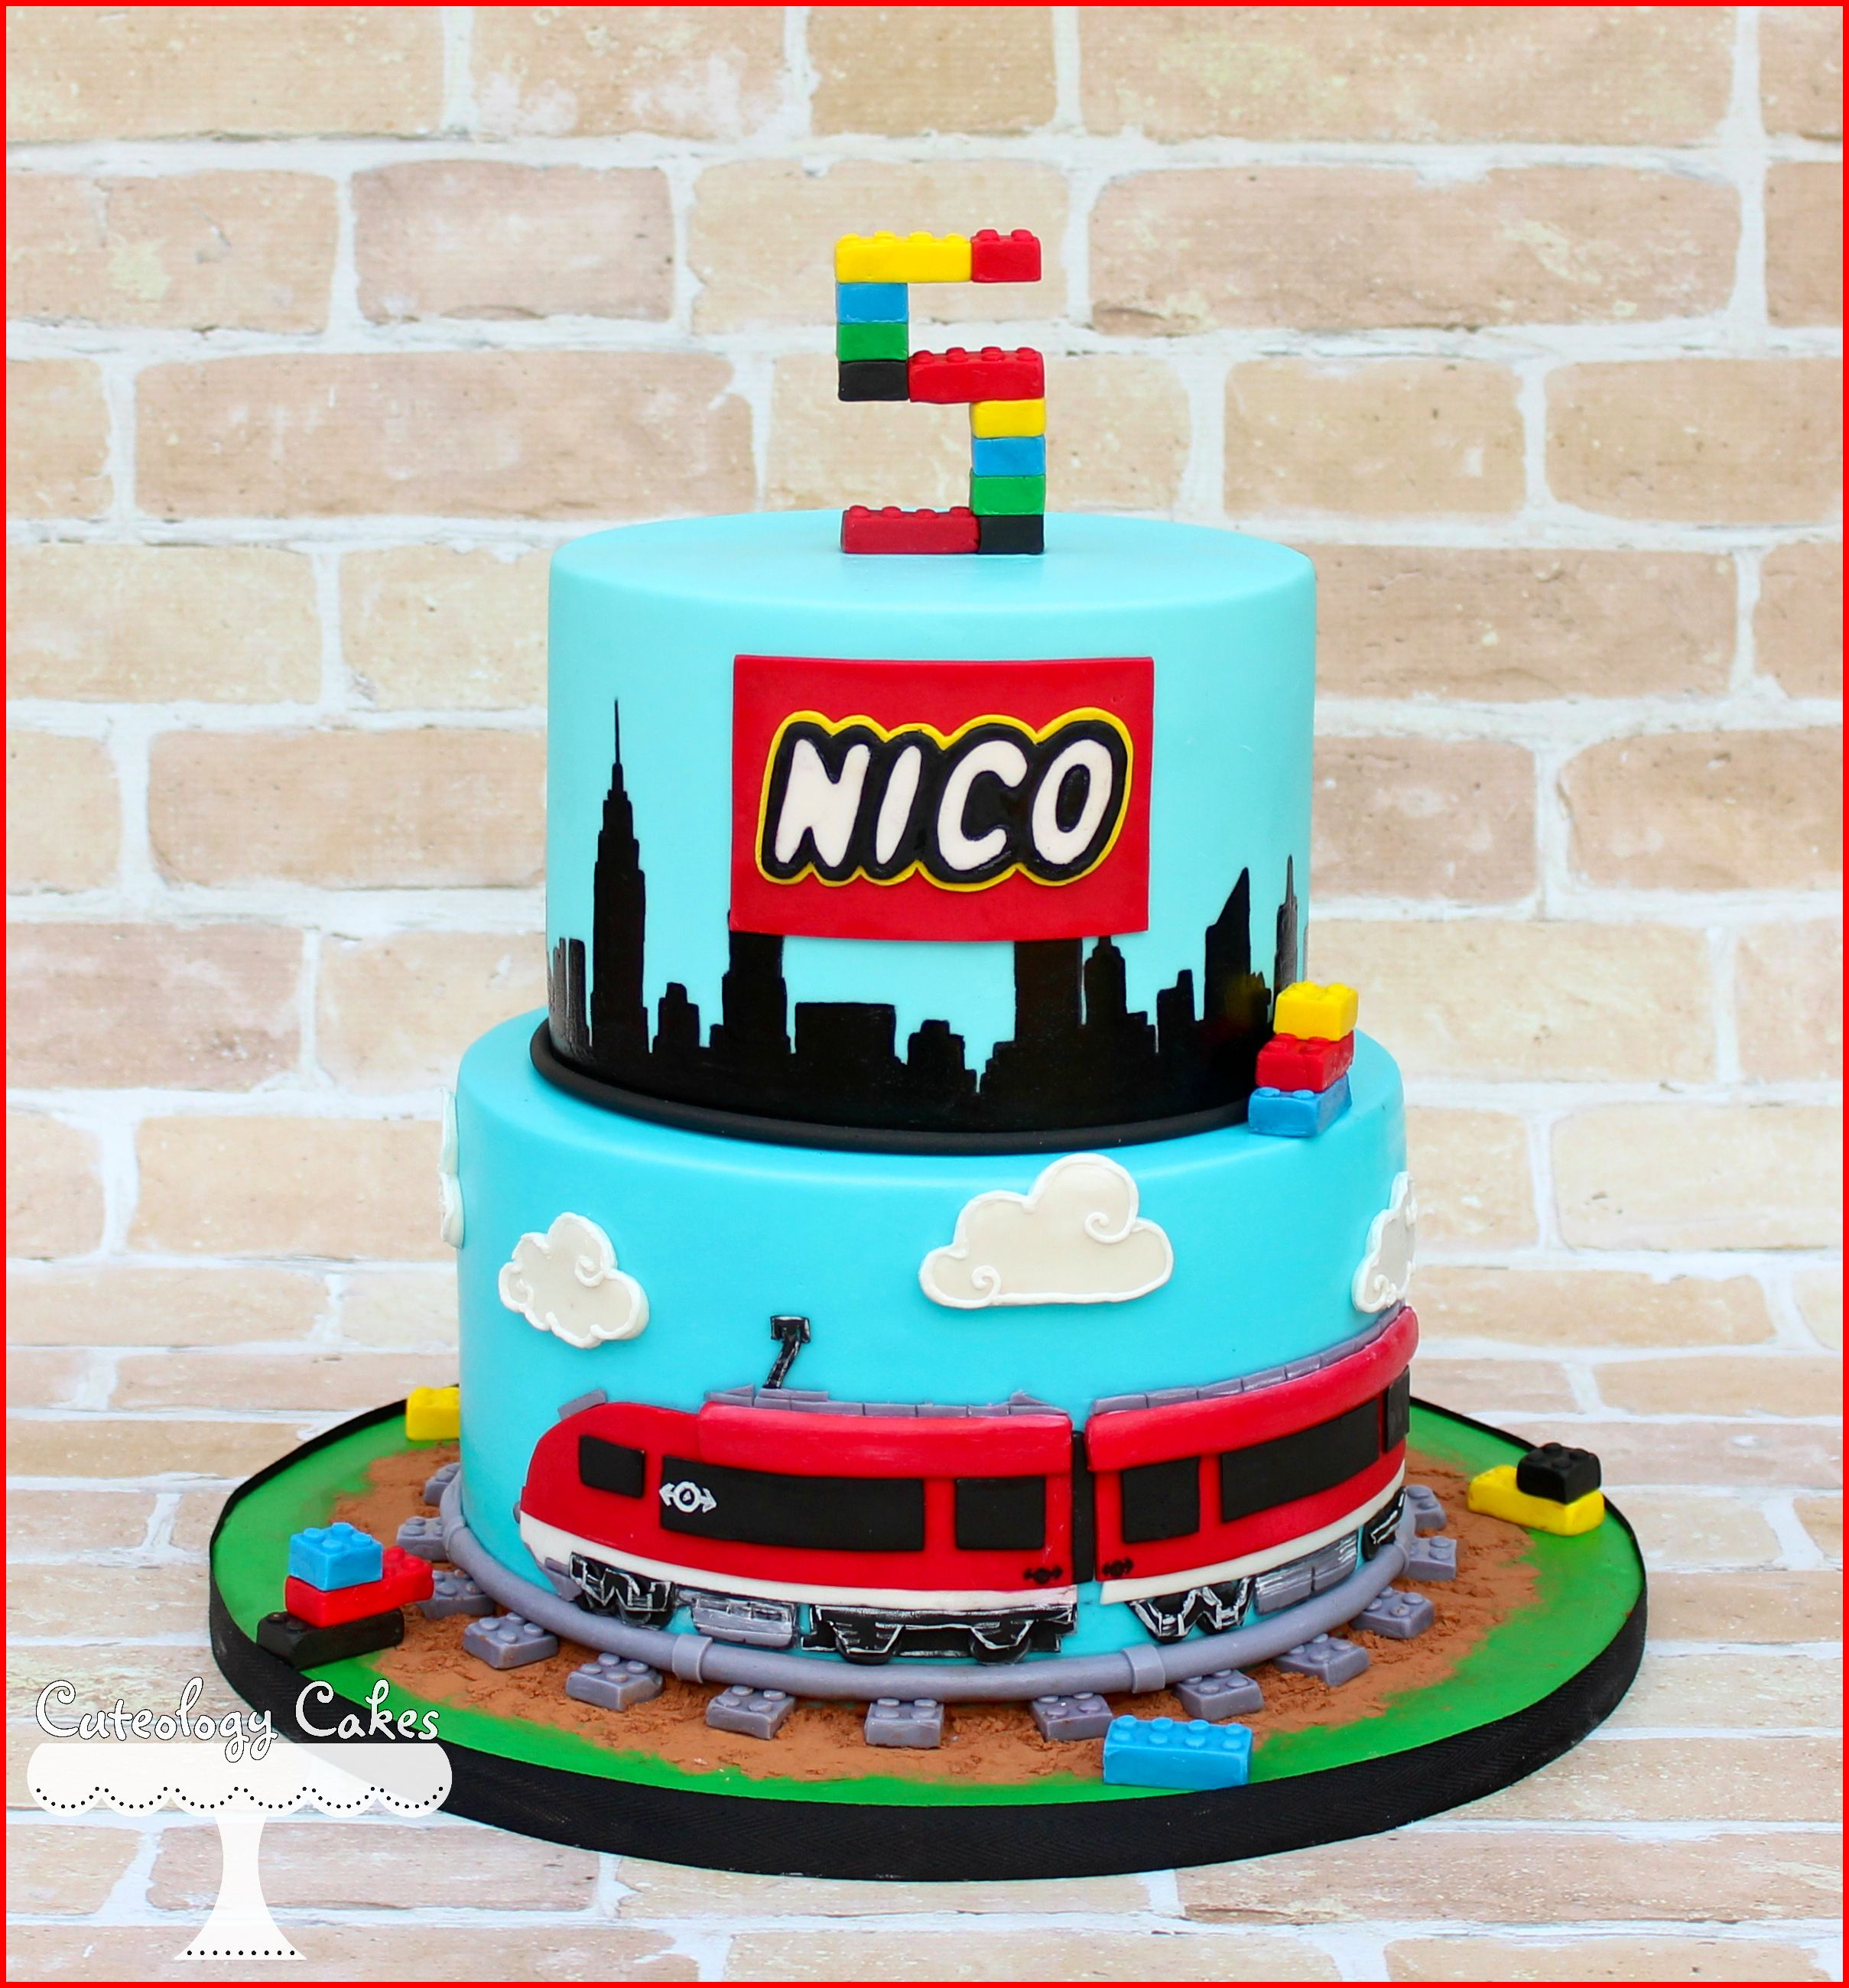 Lego City Themed Cake With Train Tracks And Skyline Silhouette